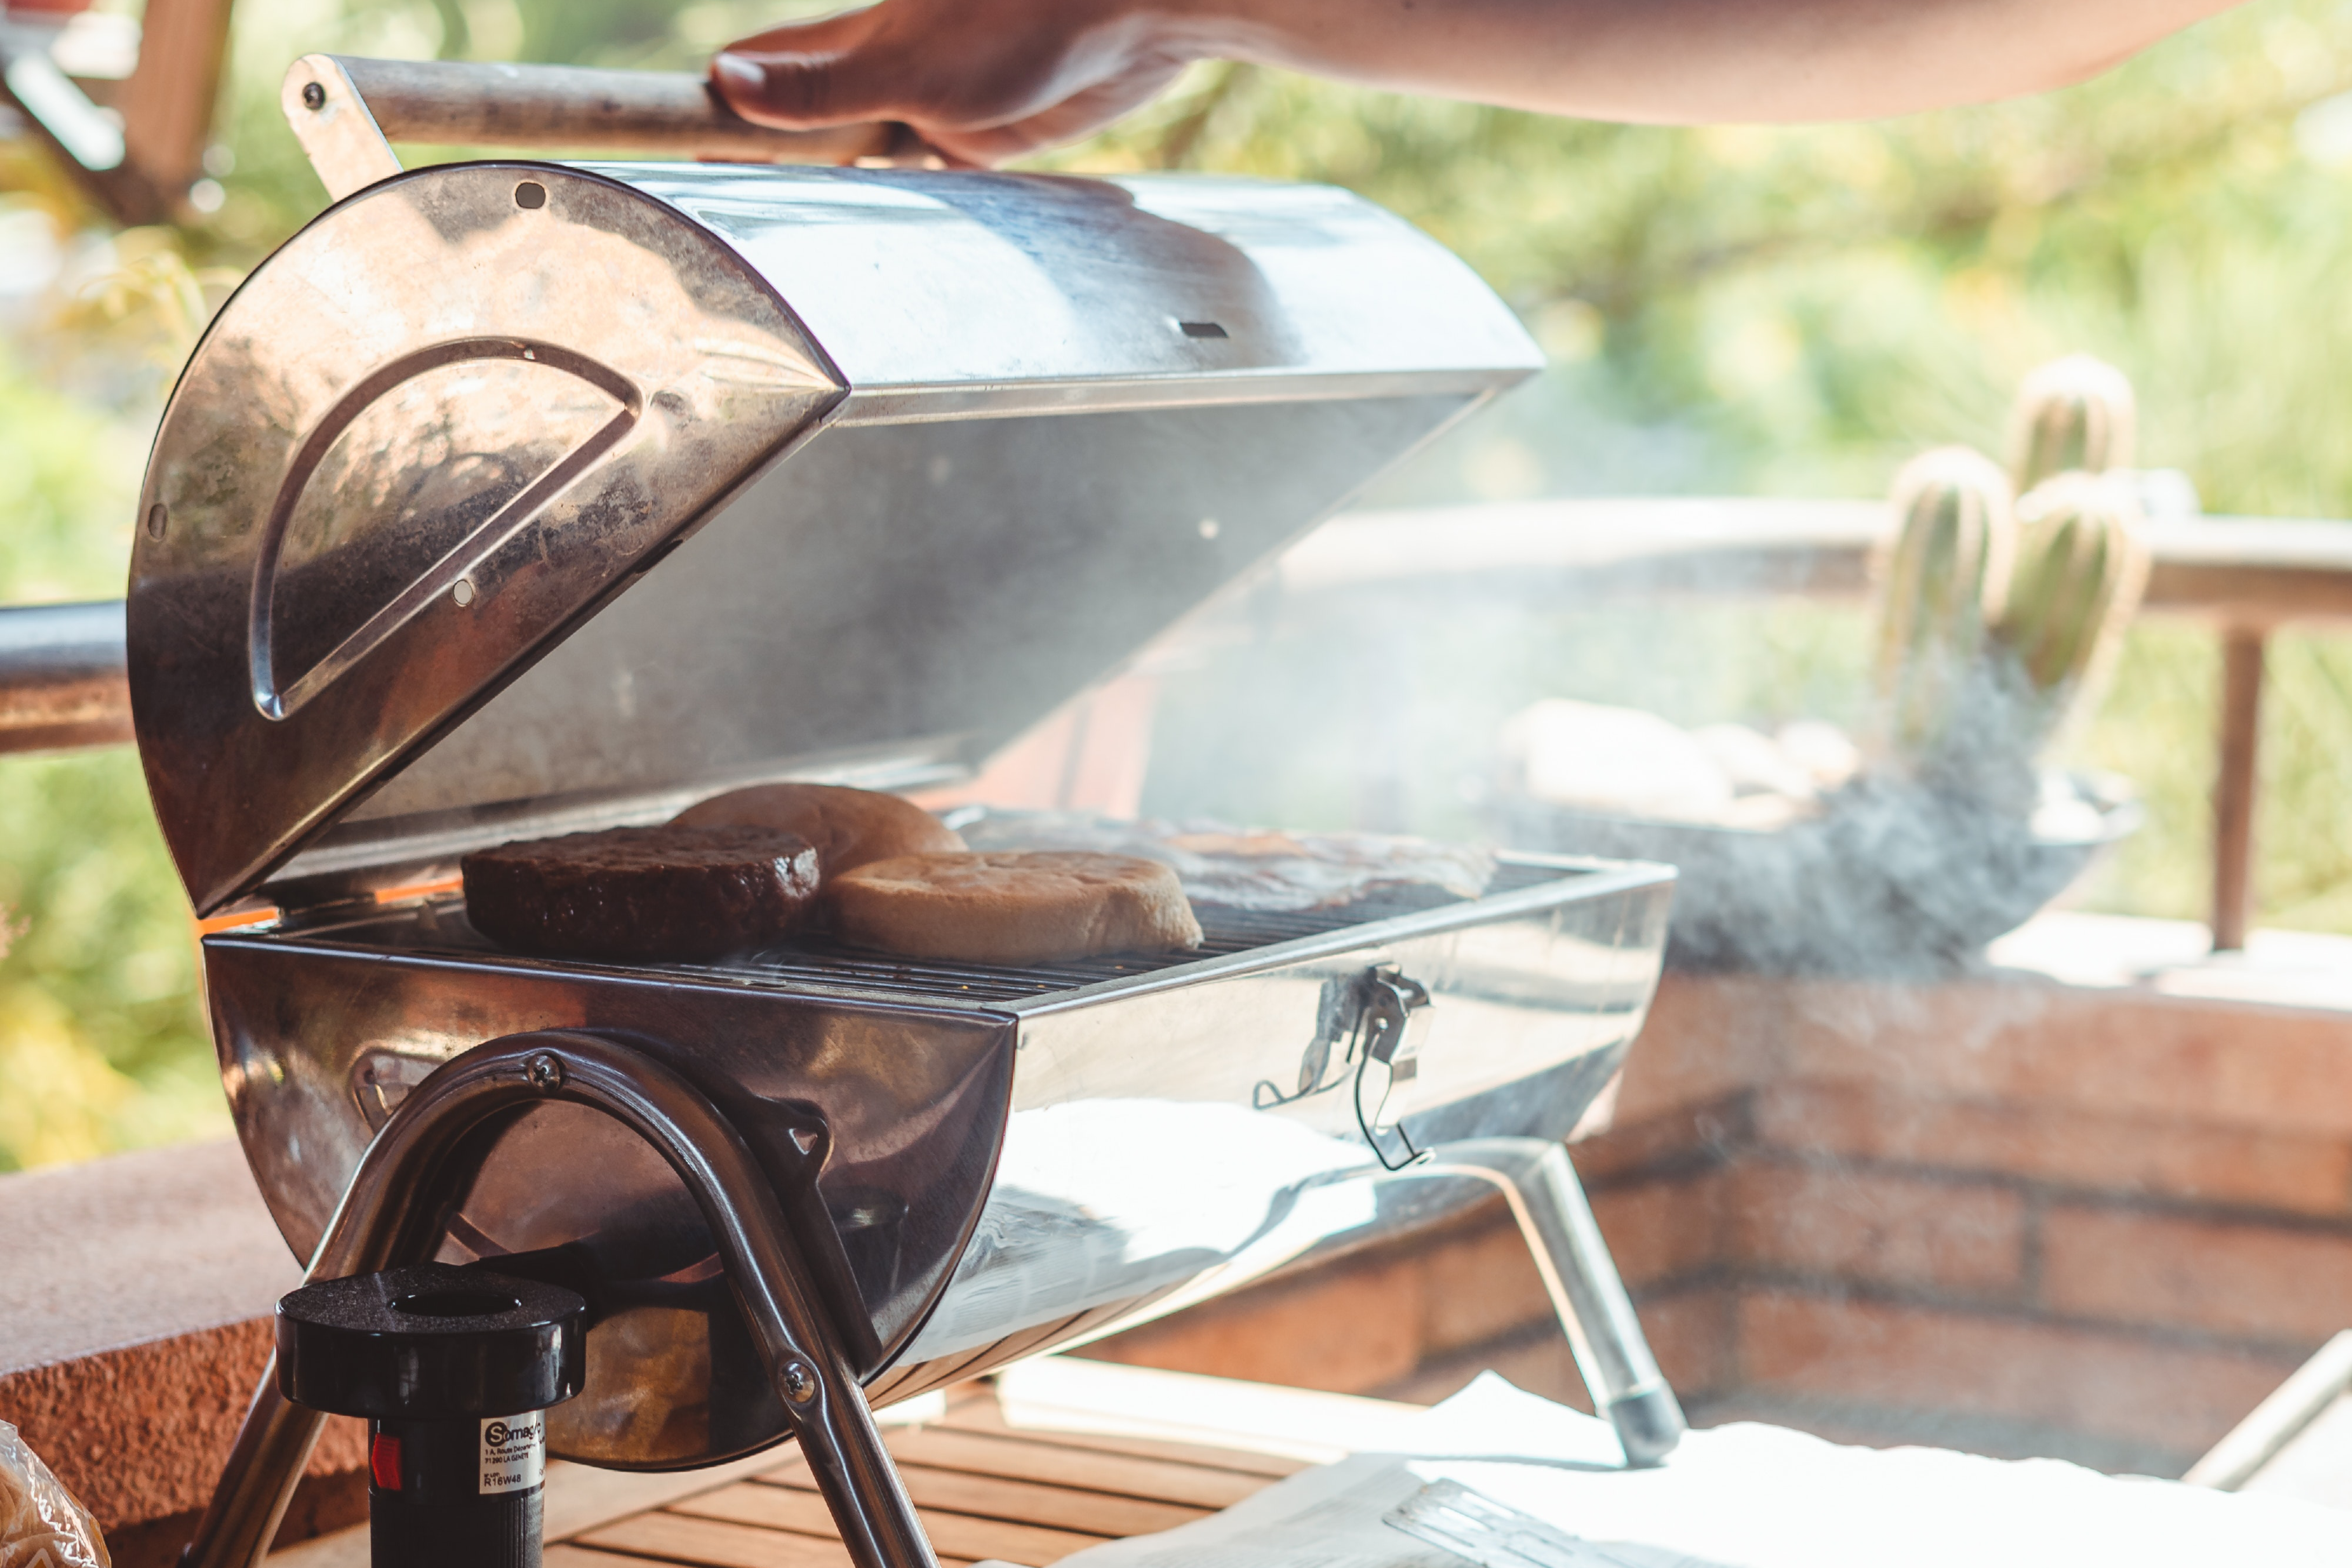 Low & slow cooking: dé barbecue trend van dit moment